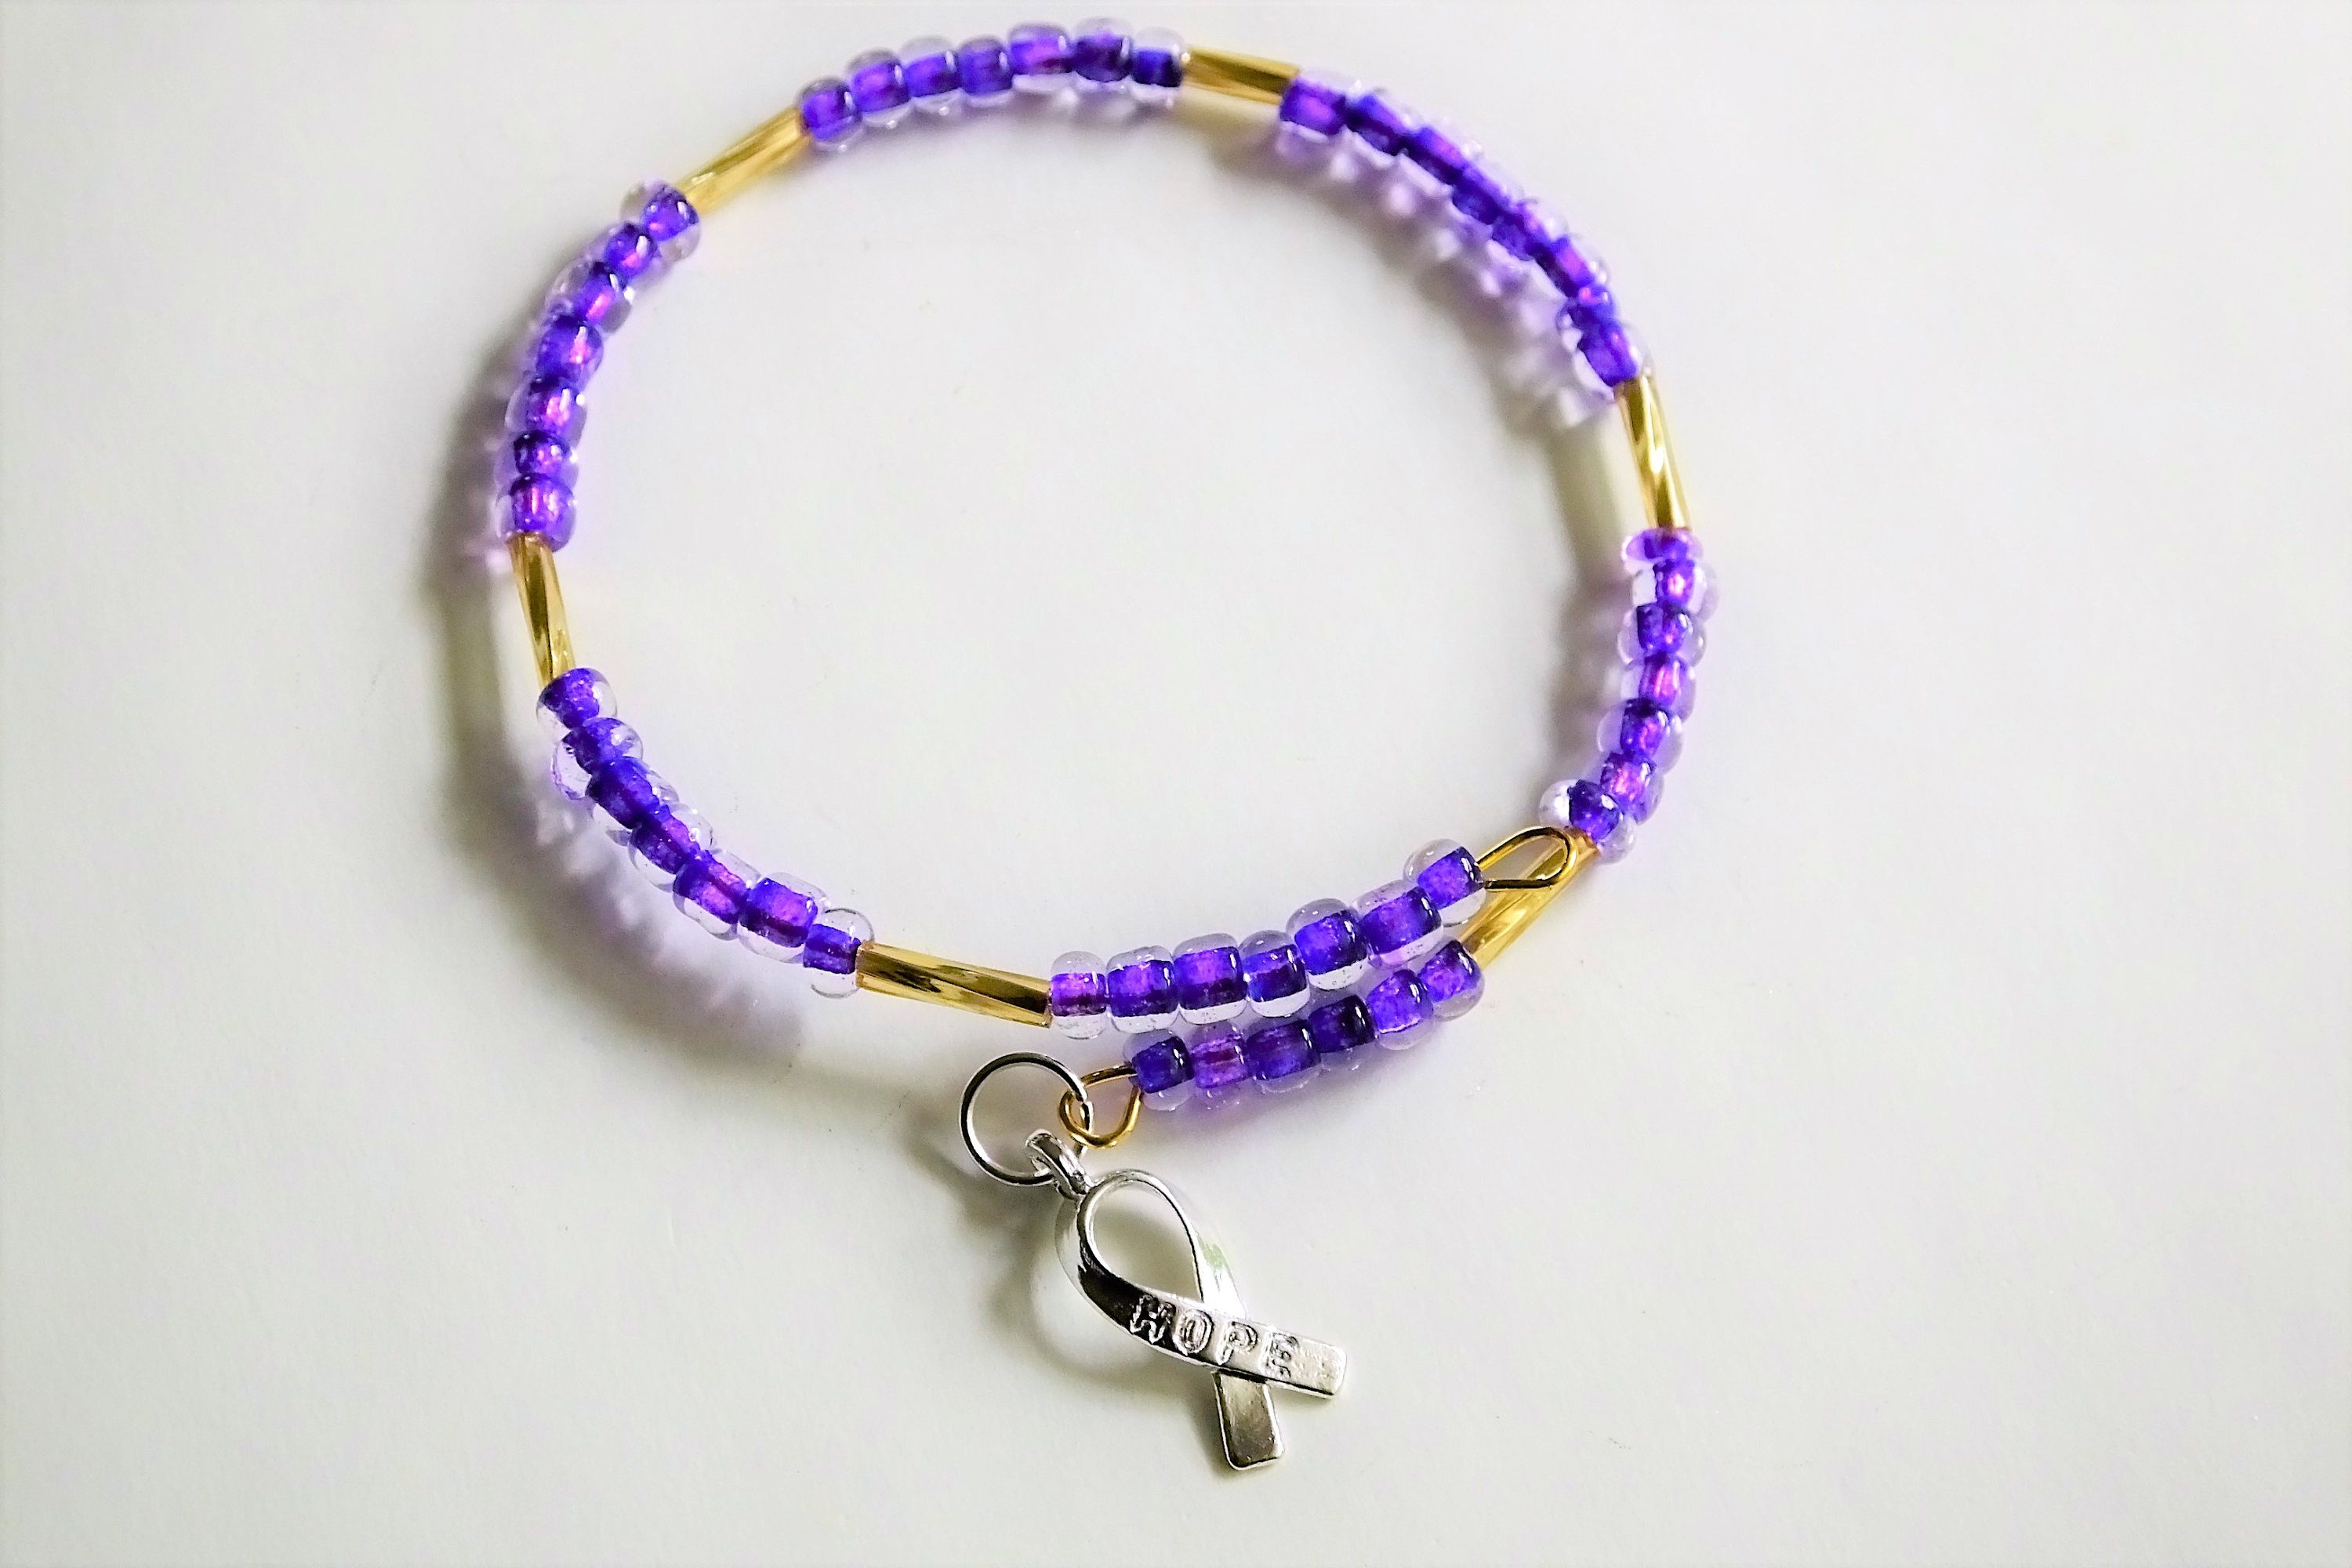 bracelet pin s buttermints alzheimer purple ribbon awareness